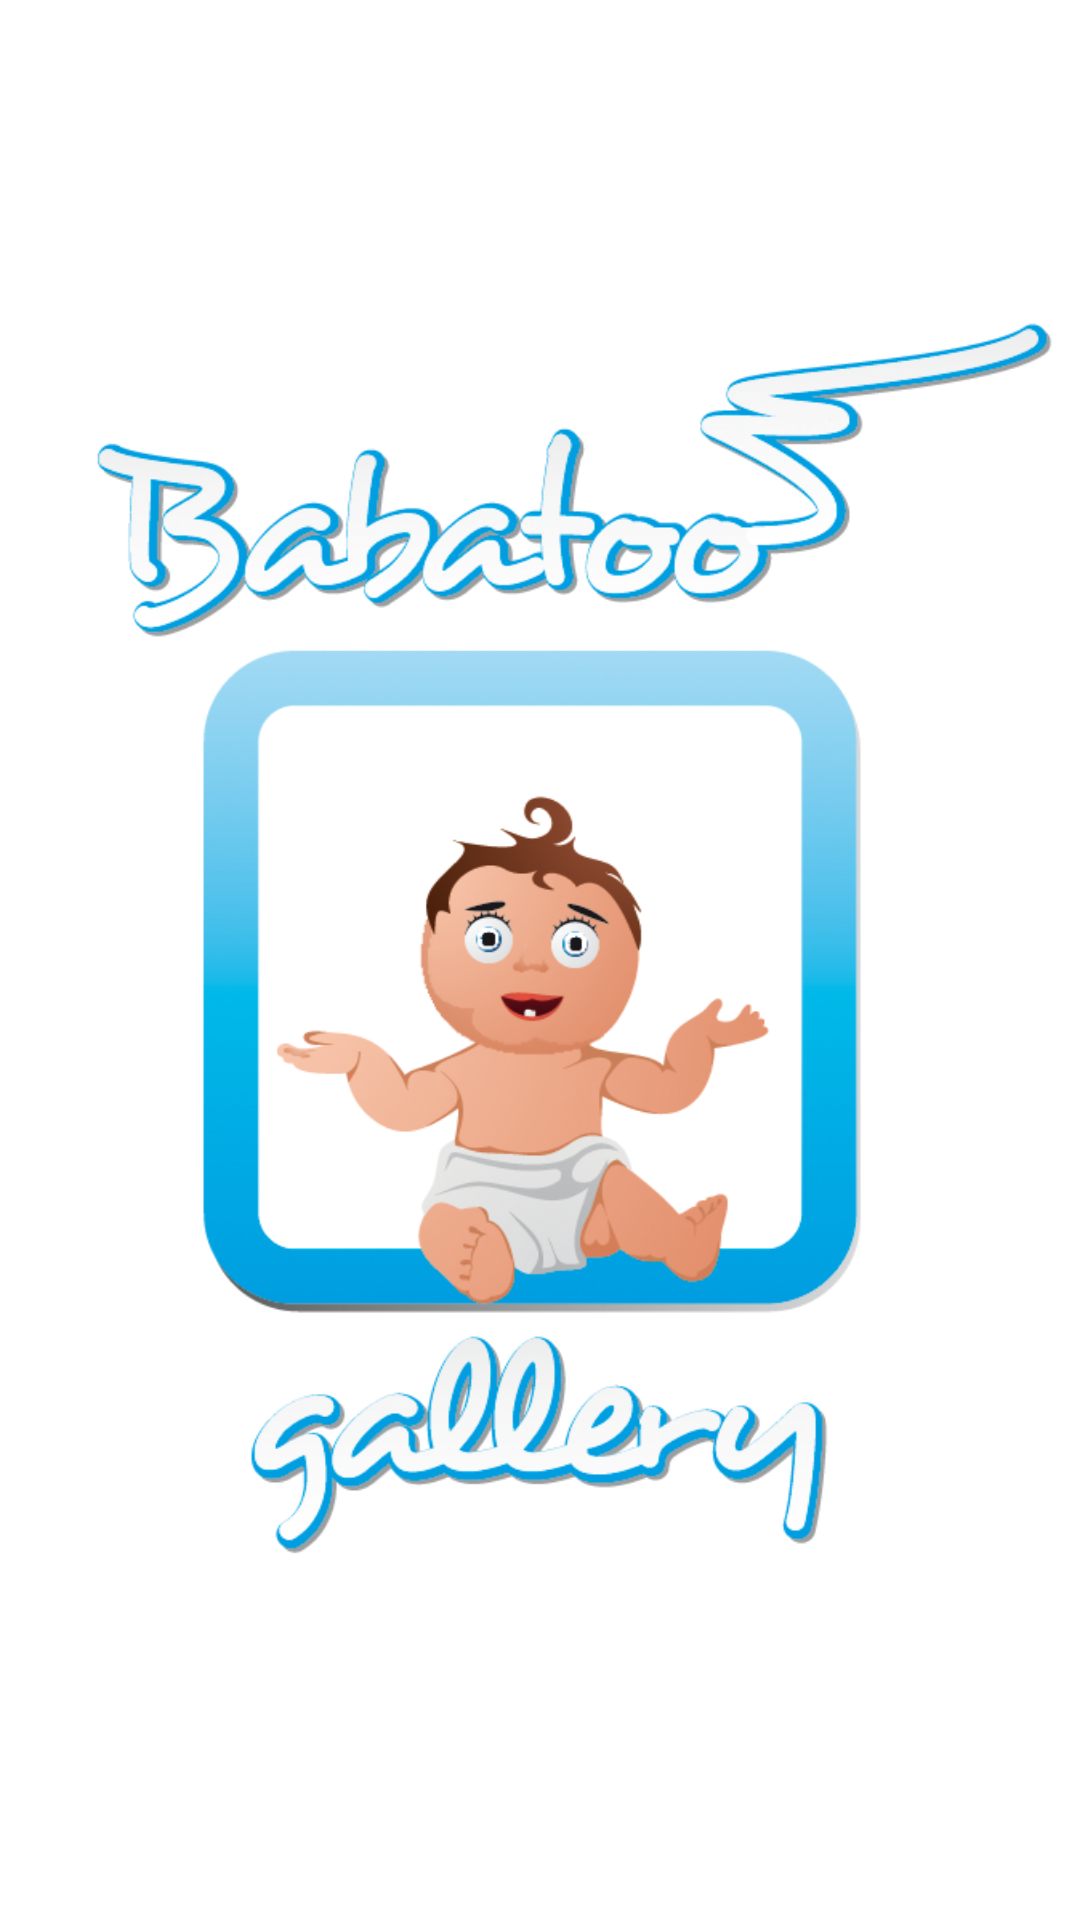 Babatoo Gallery - Splash Screen